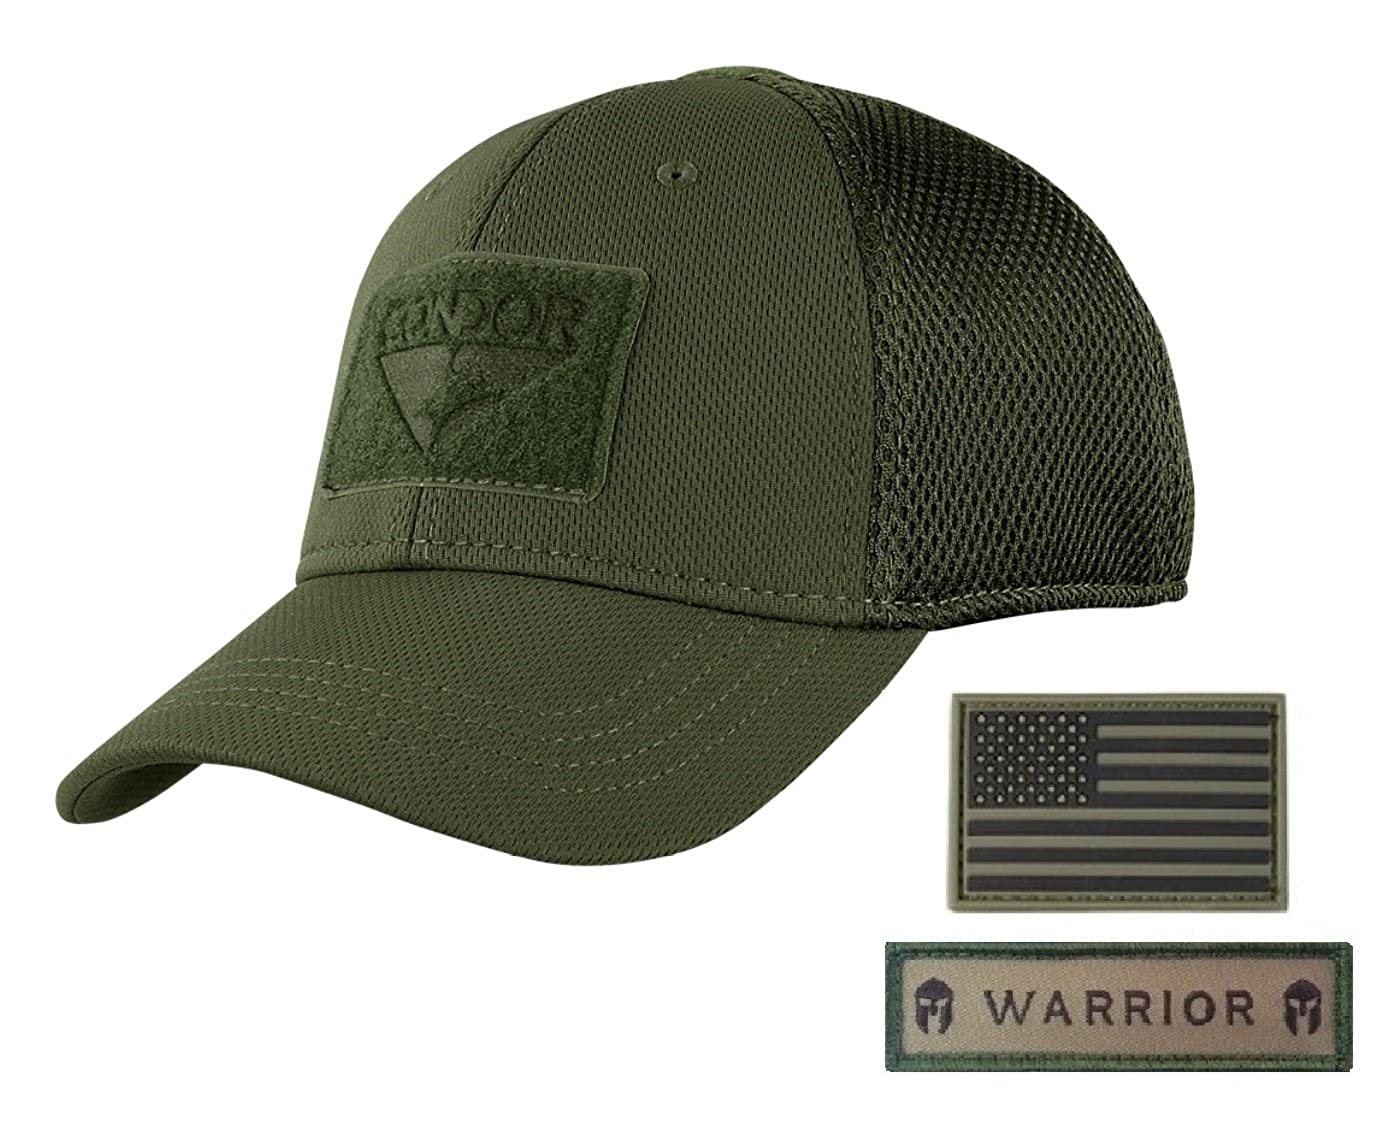 Condor Flex Mesh Cap (OD Green) + PVC Flag & Warrior Patch, Highly  Breathable Fitted Tactical Operator Hat